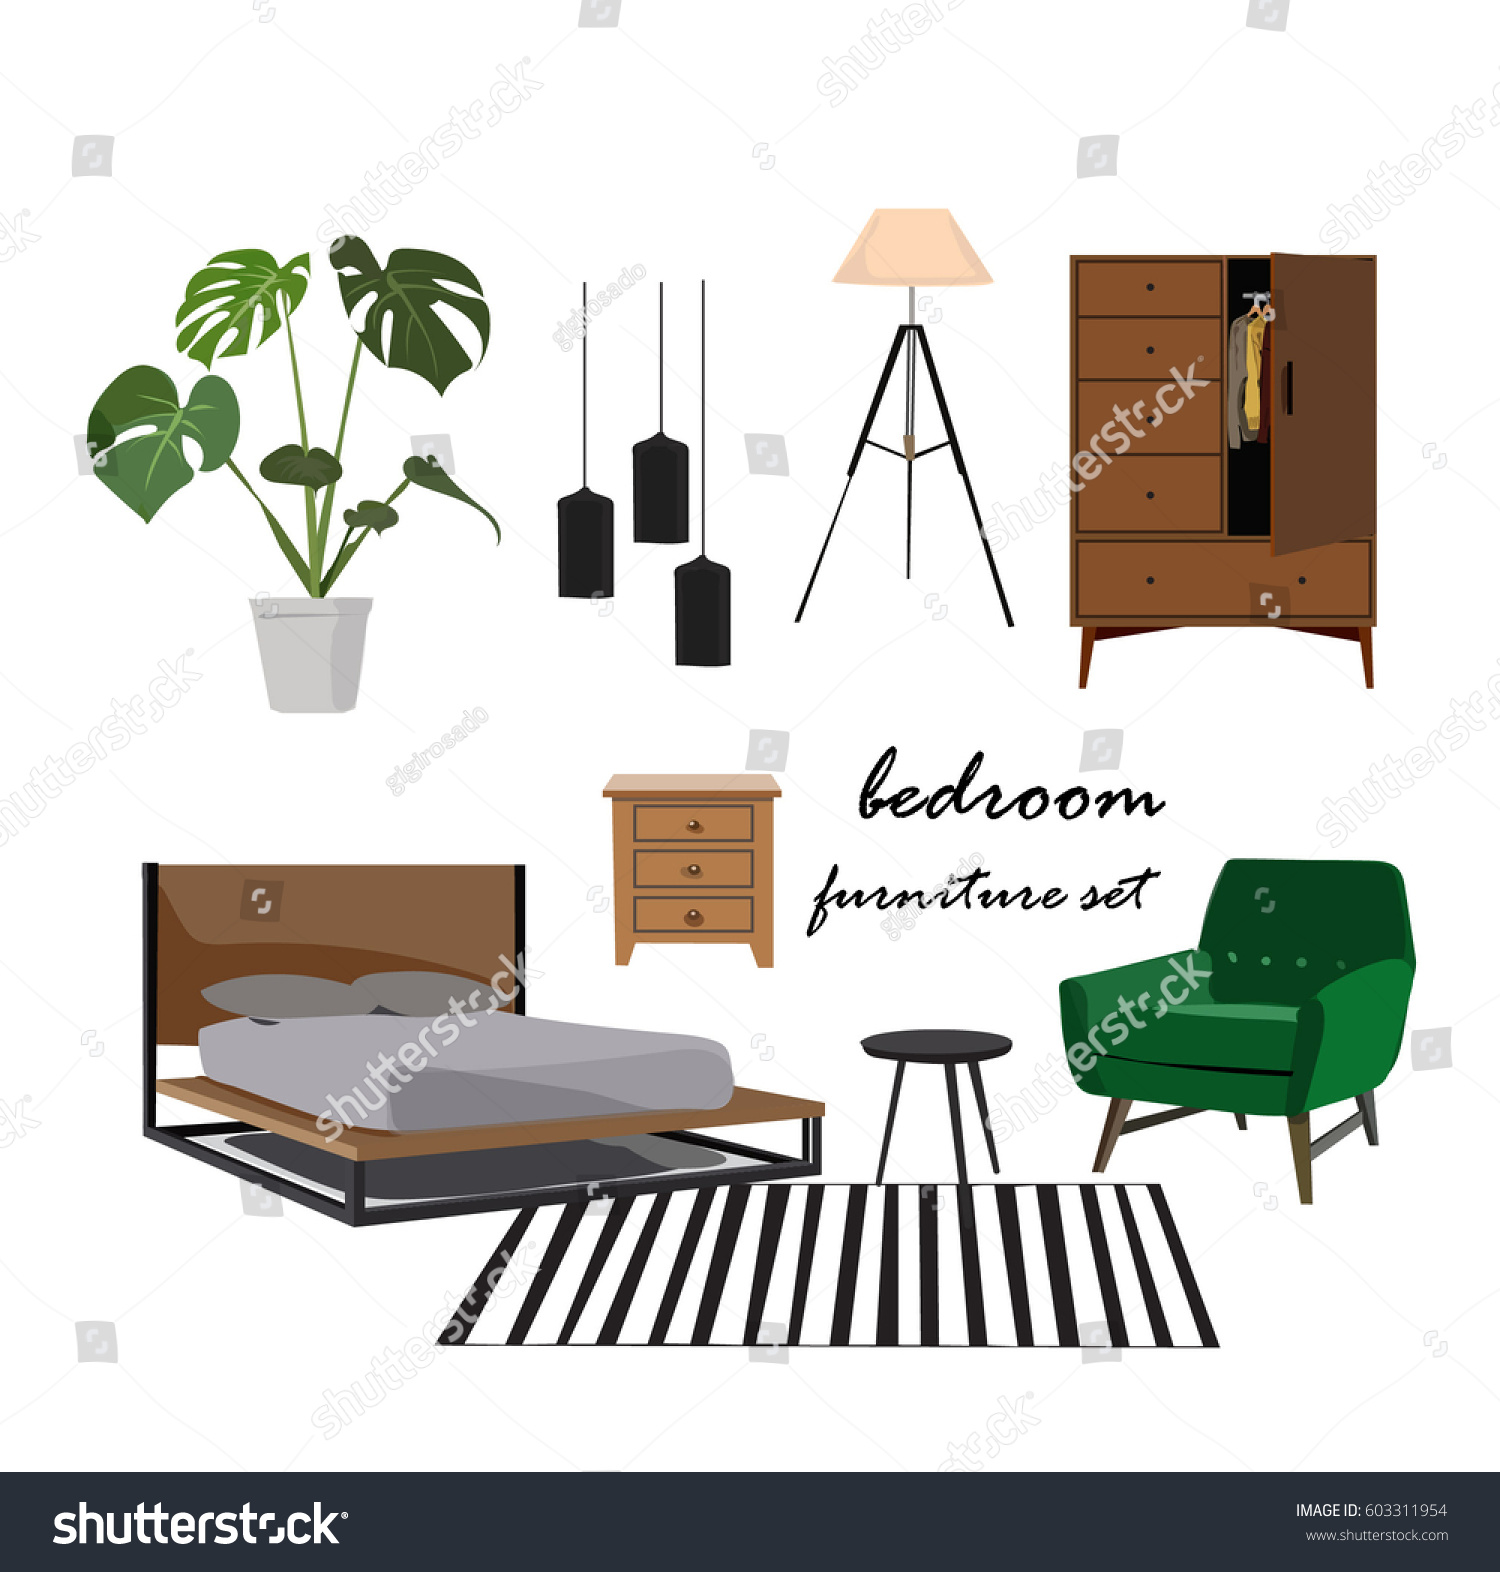 Bedroom Furniture Set. Interior Design Home Elements Collection.mood Board,  Designer, Danish